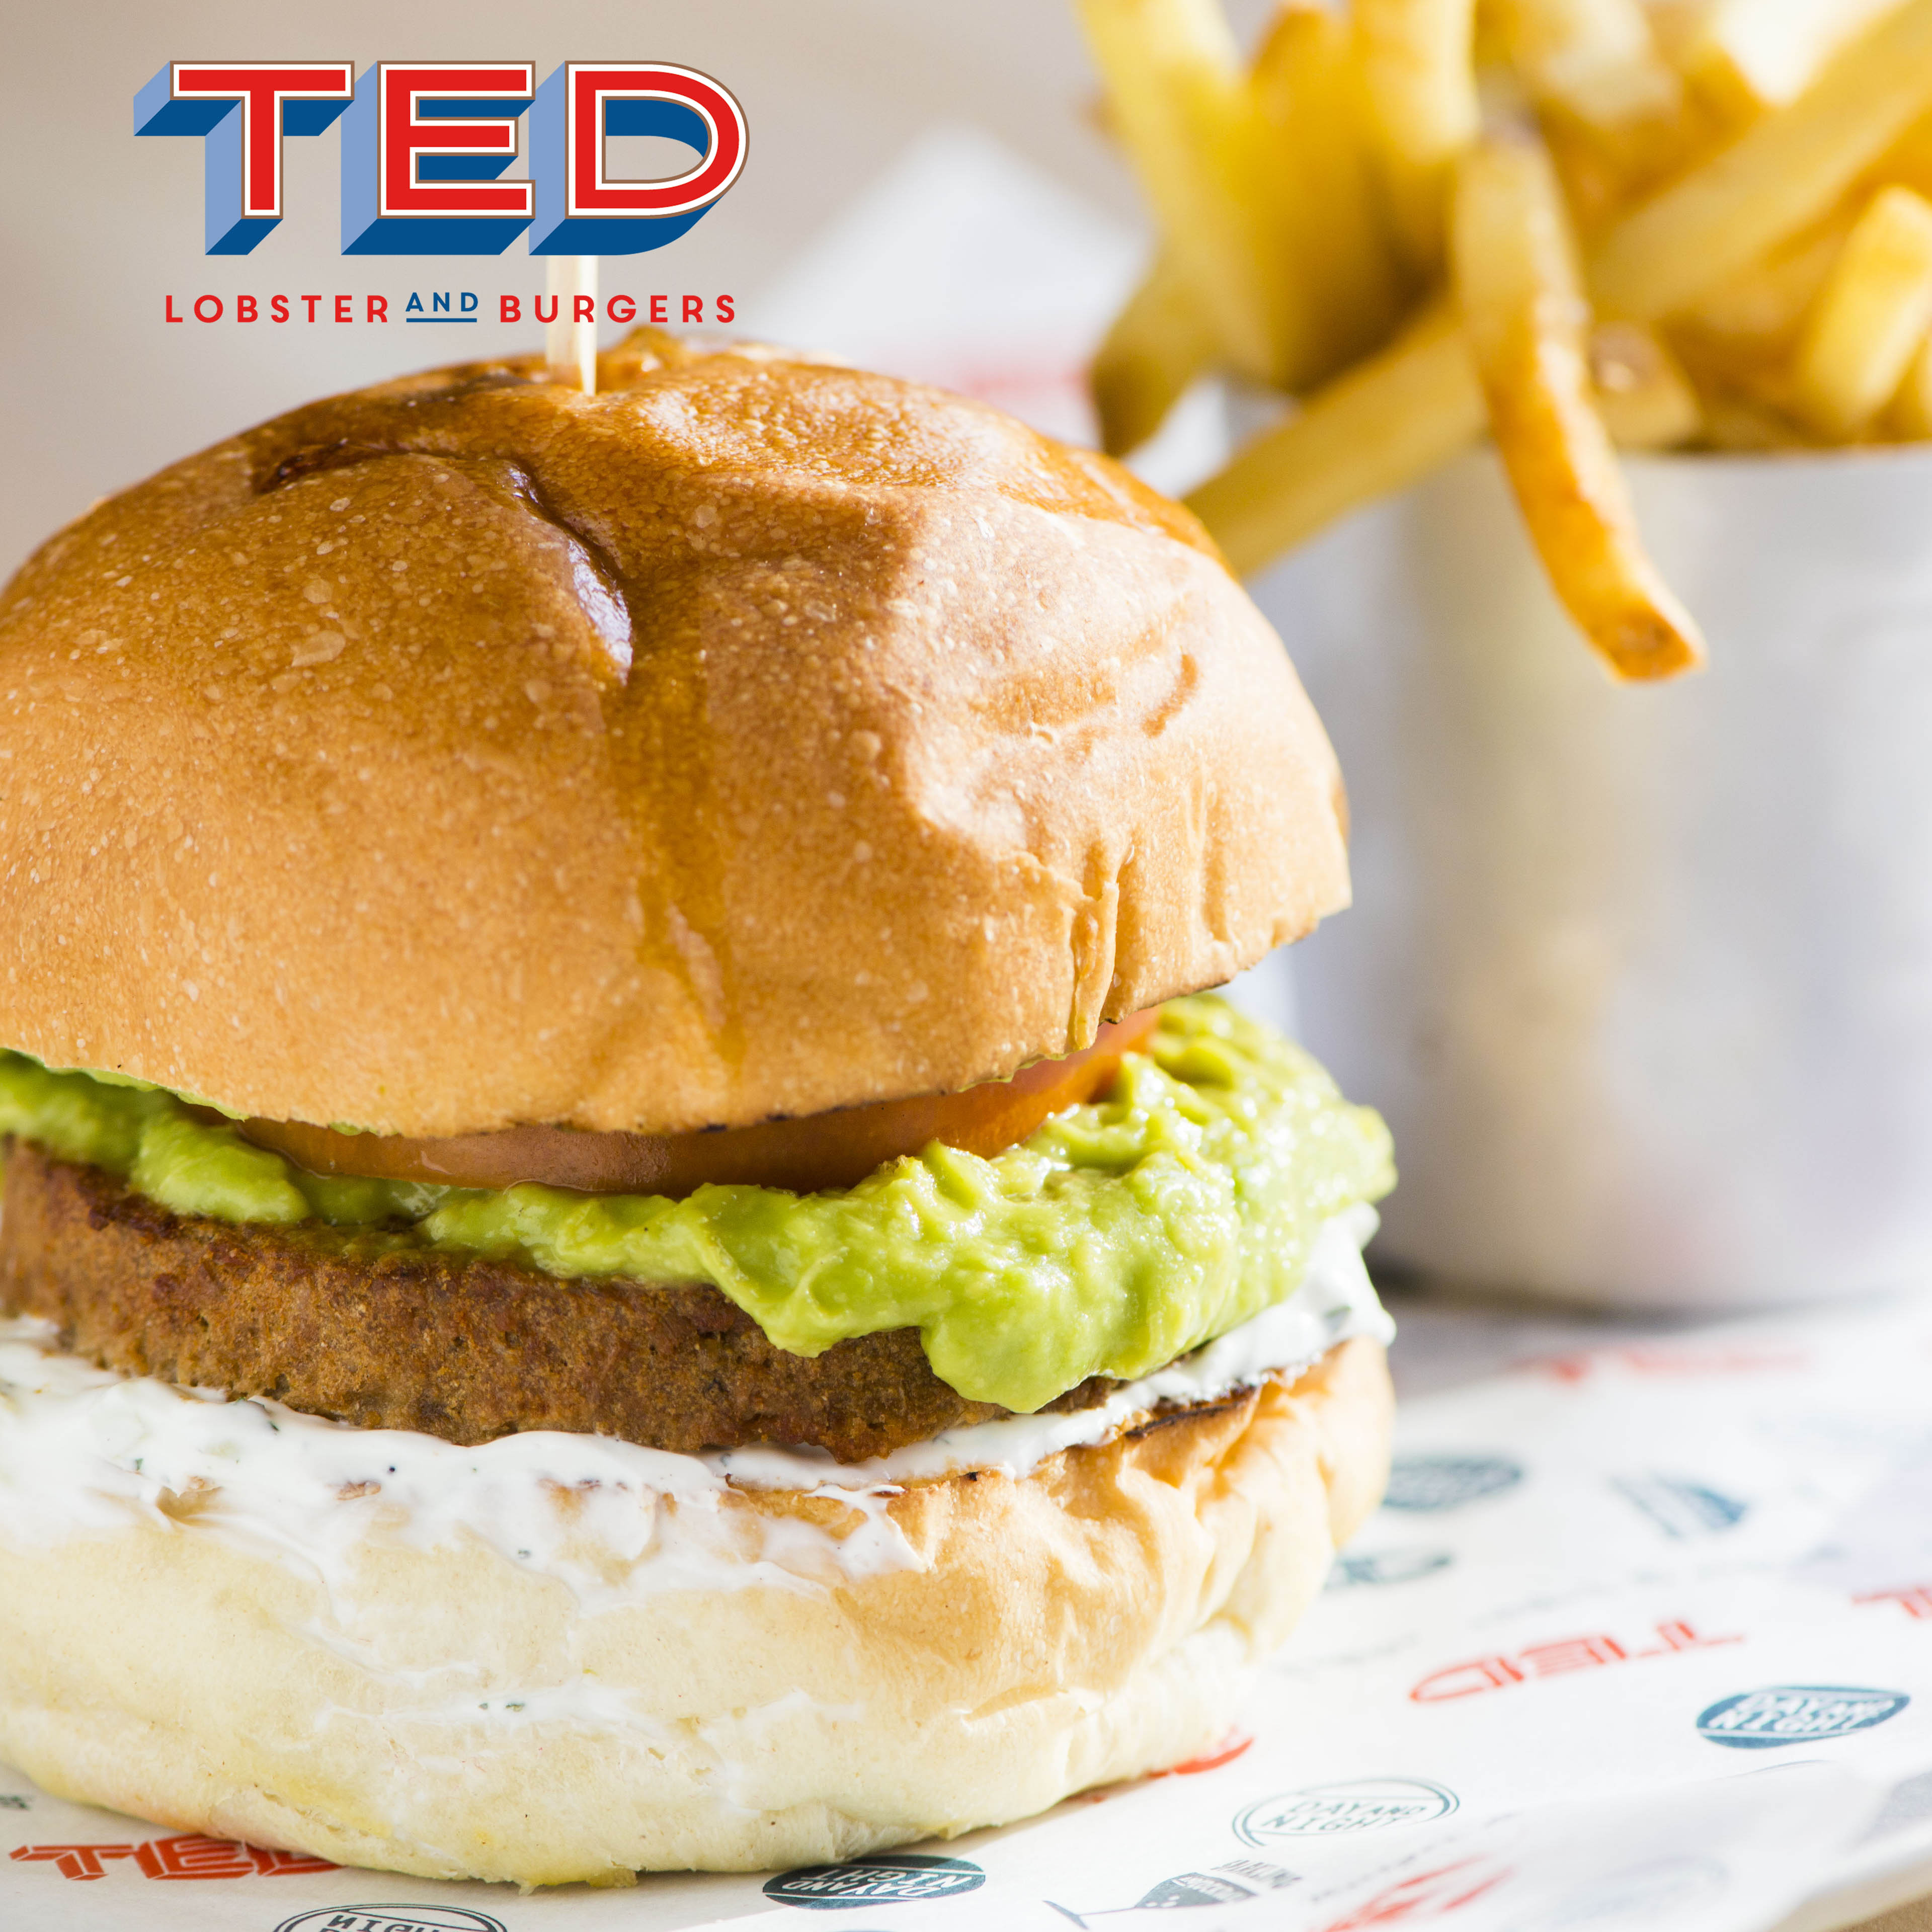 TED Lobster and Burgers Roma lunch veg burger